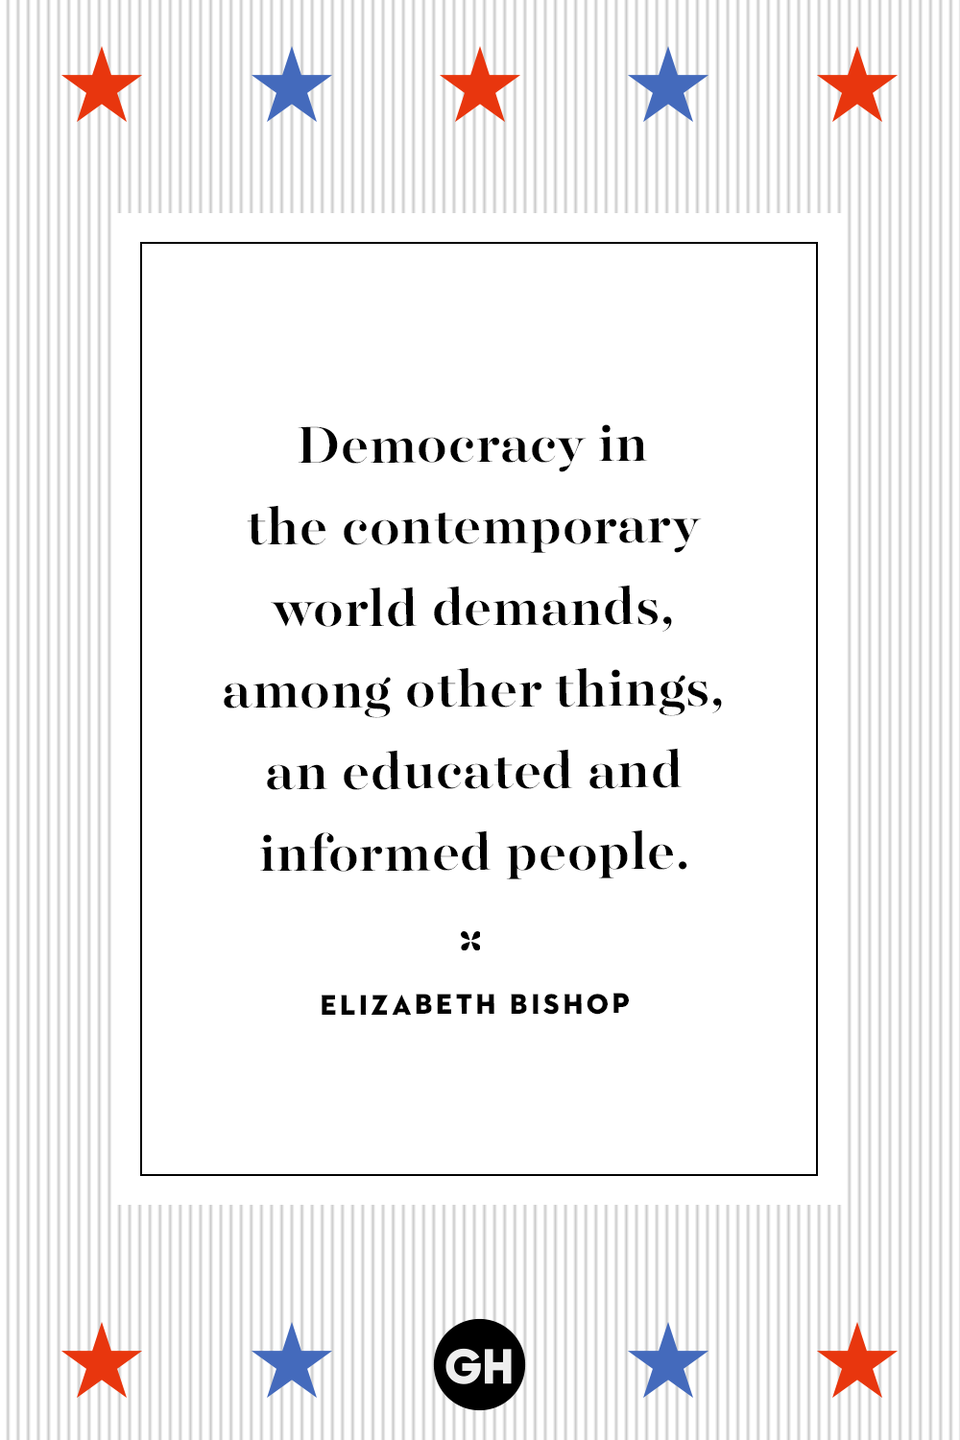 <p>Democracy in the contemporary world demands, among other things, an educated and informed people.</p>